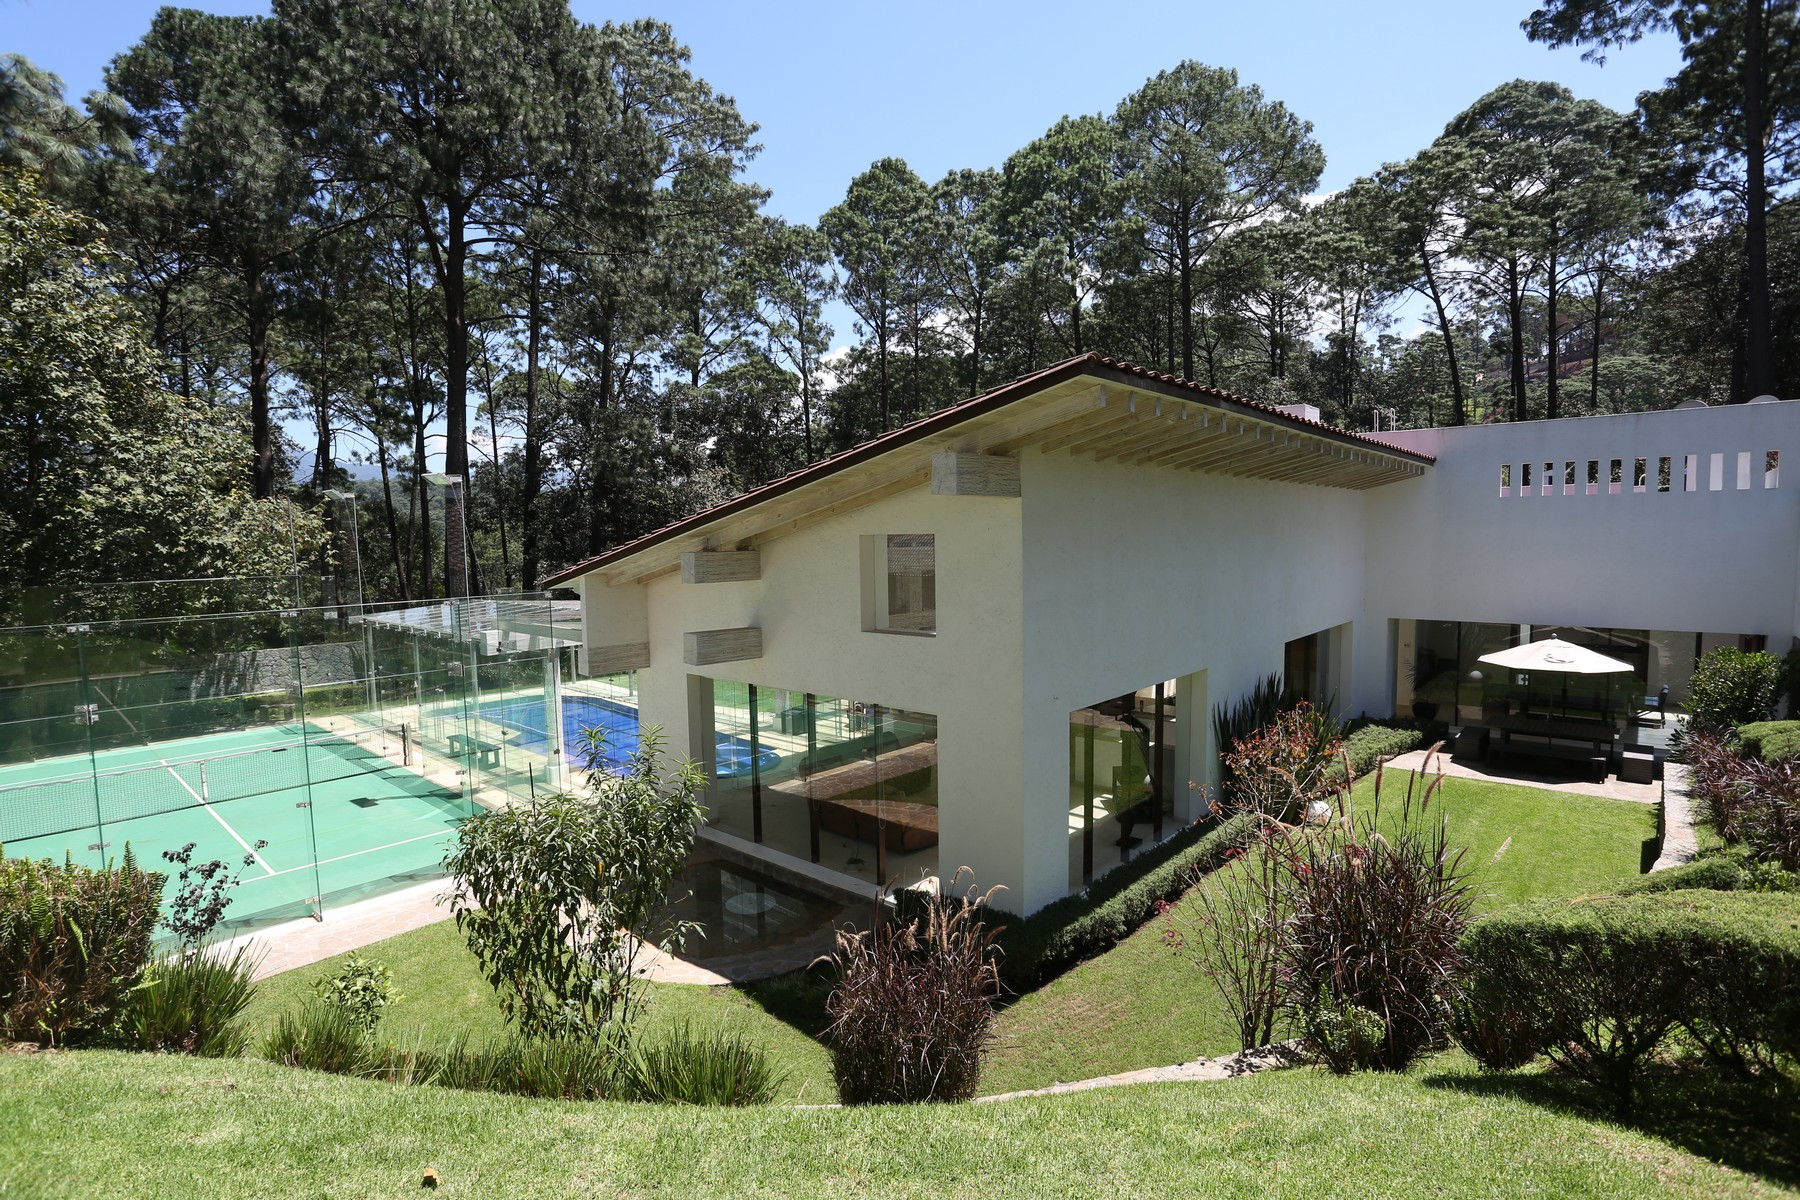 Single Family Home for Sale at Avandaro Residence at Valle de Bravo Federal District, 51200 Mexico